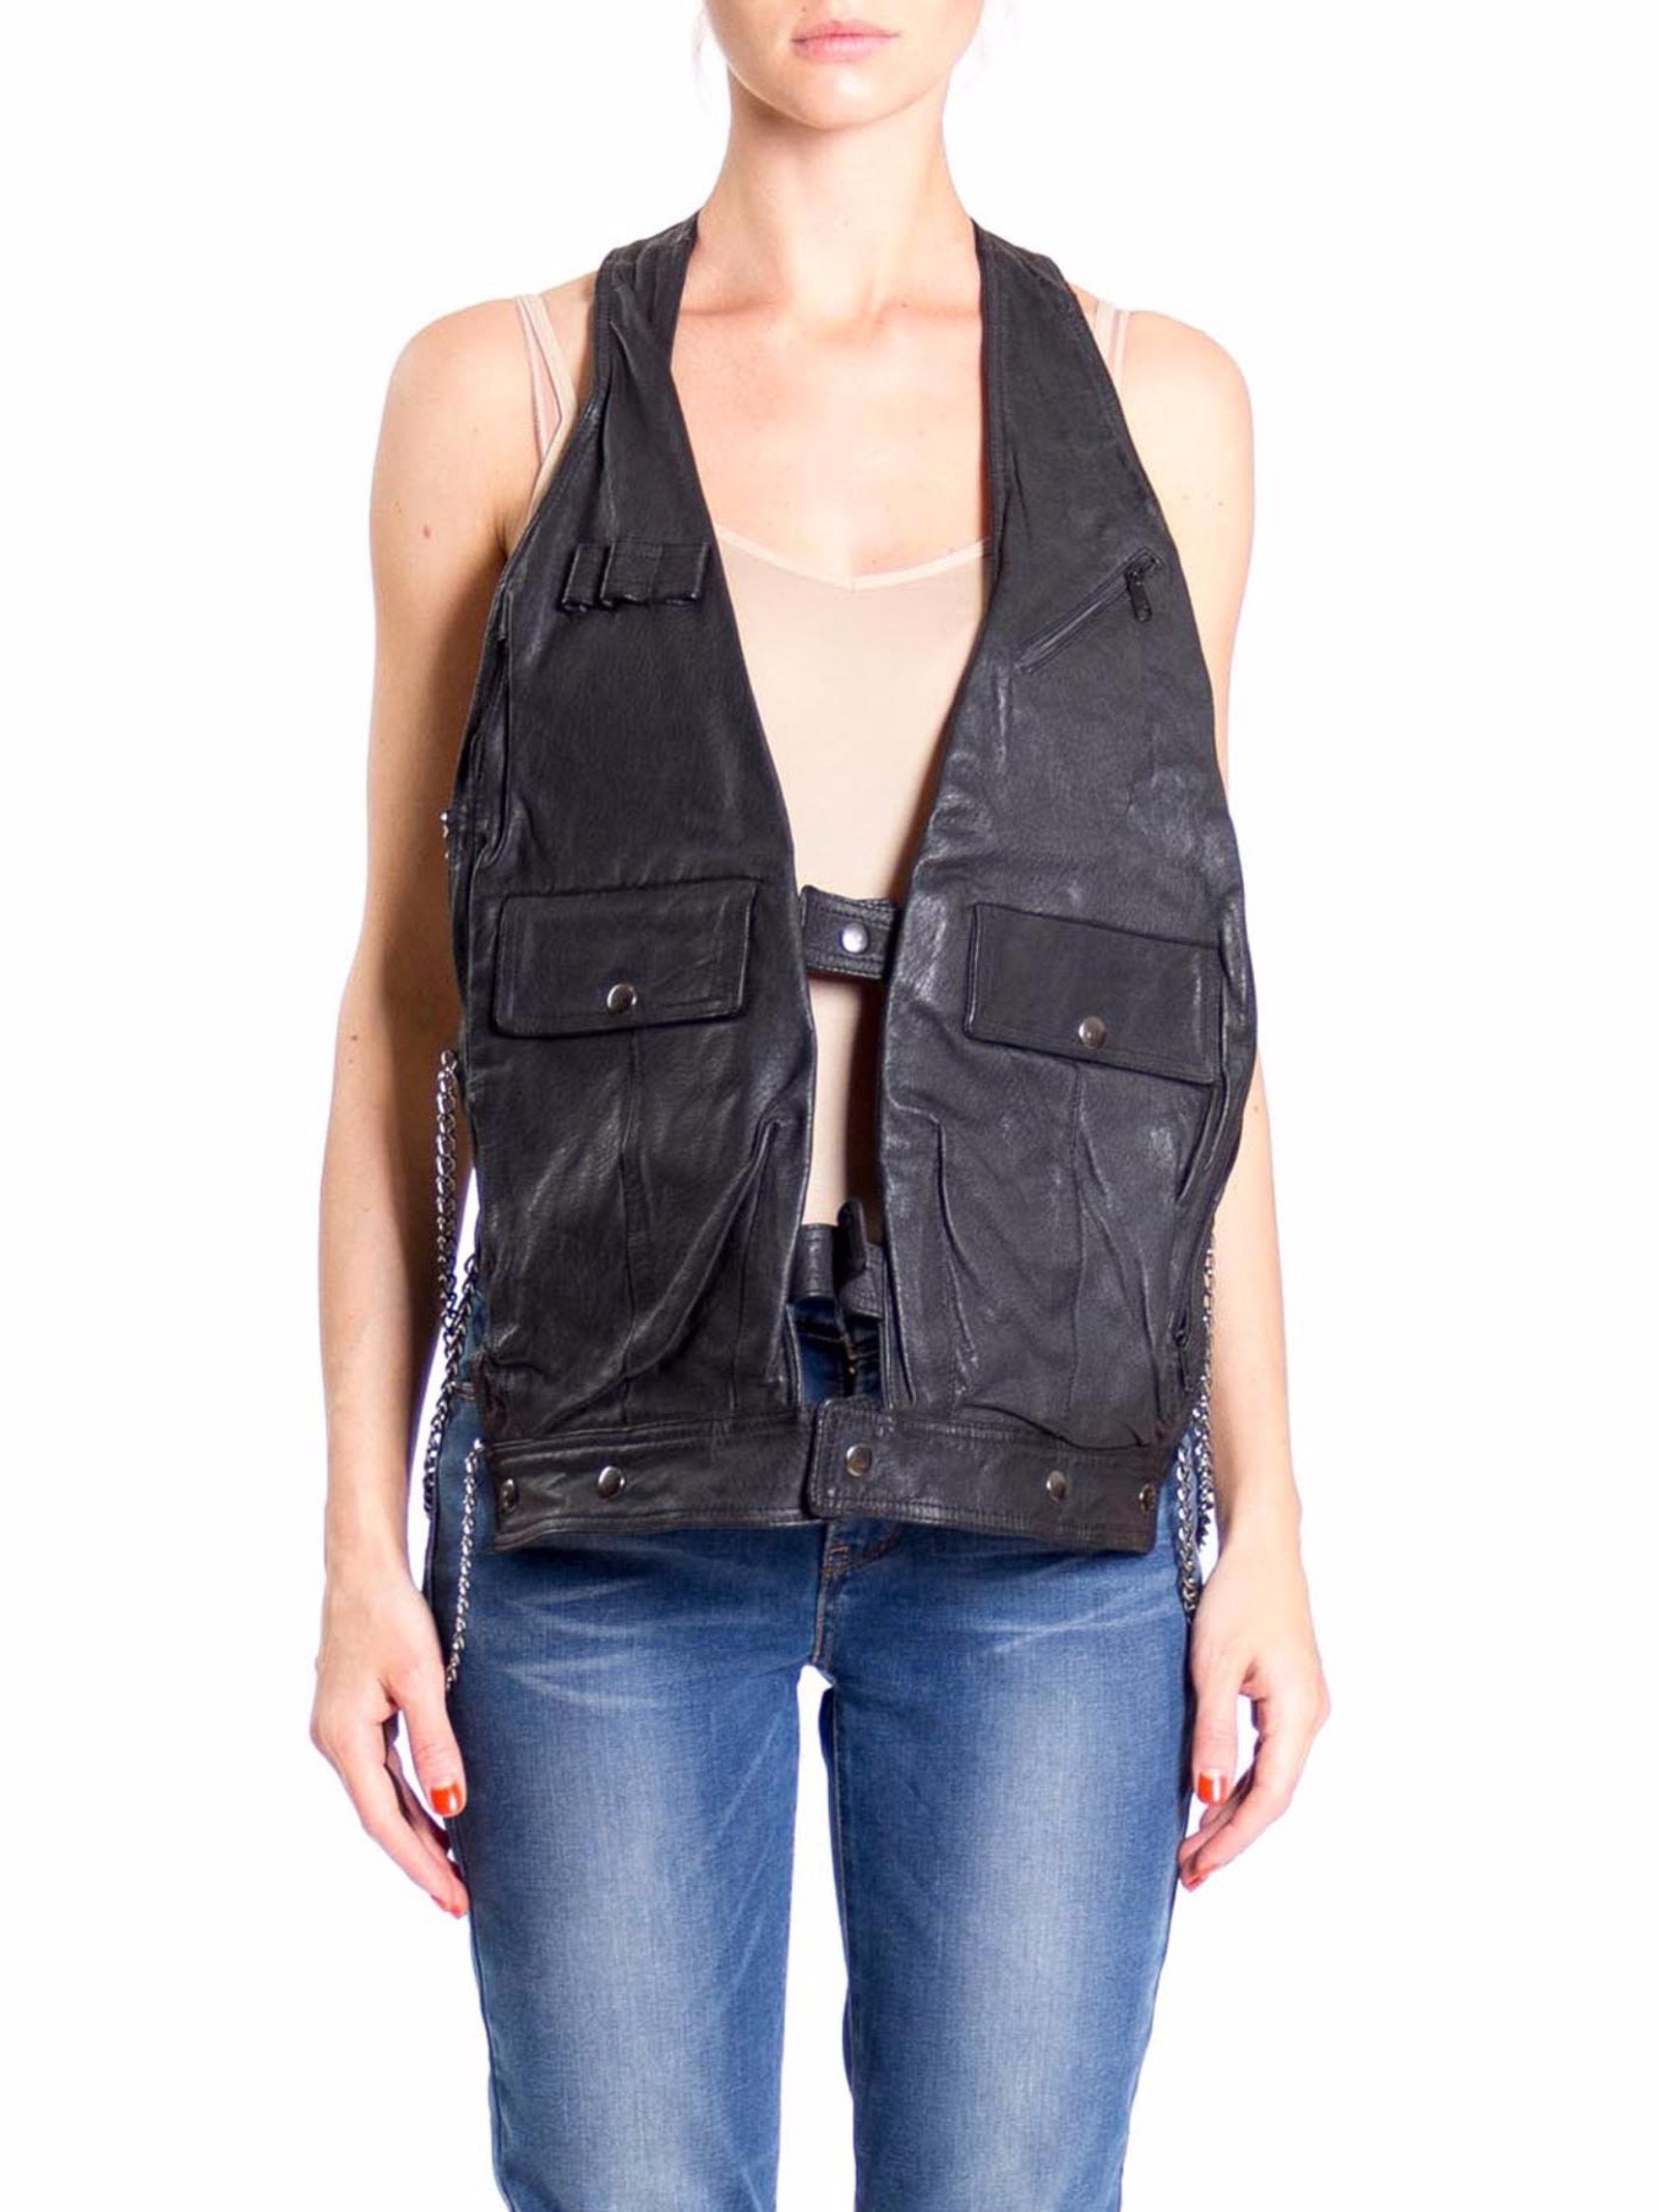 Morphew Lab Updated 1980s Biker Rocker Leather Pocket Vest with Chains